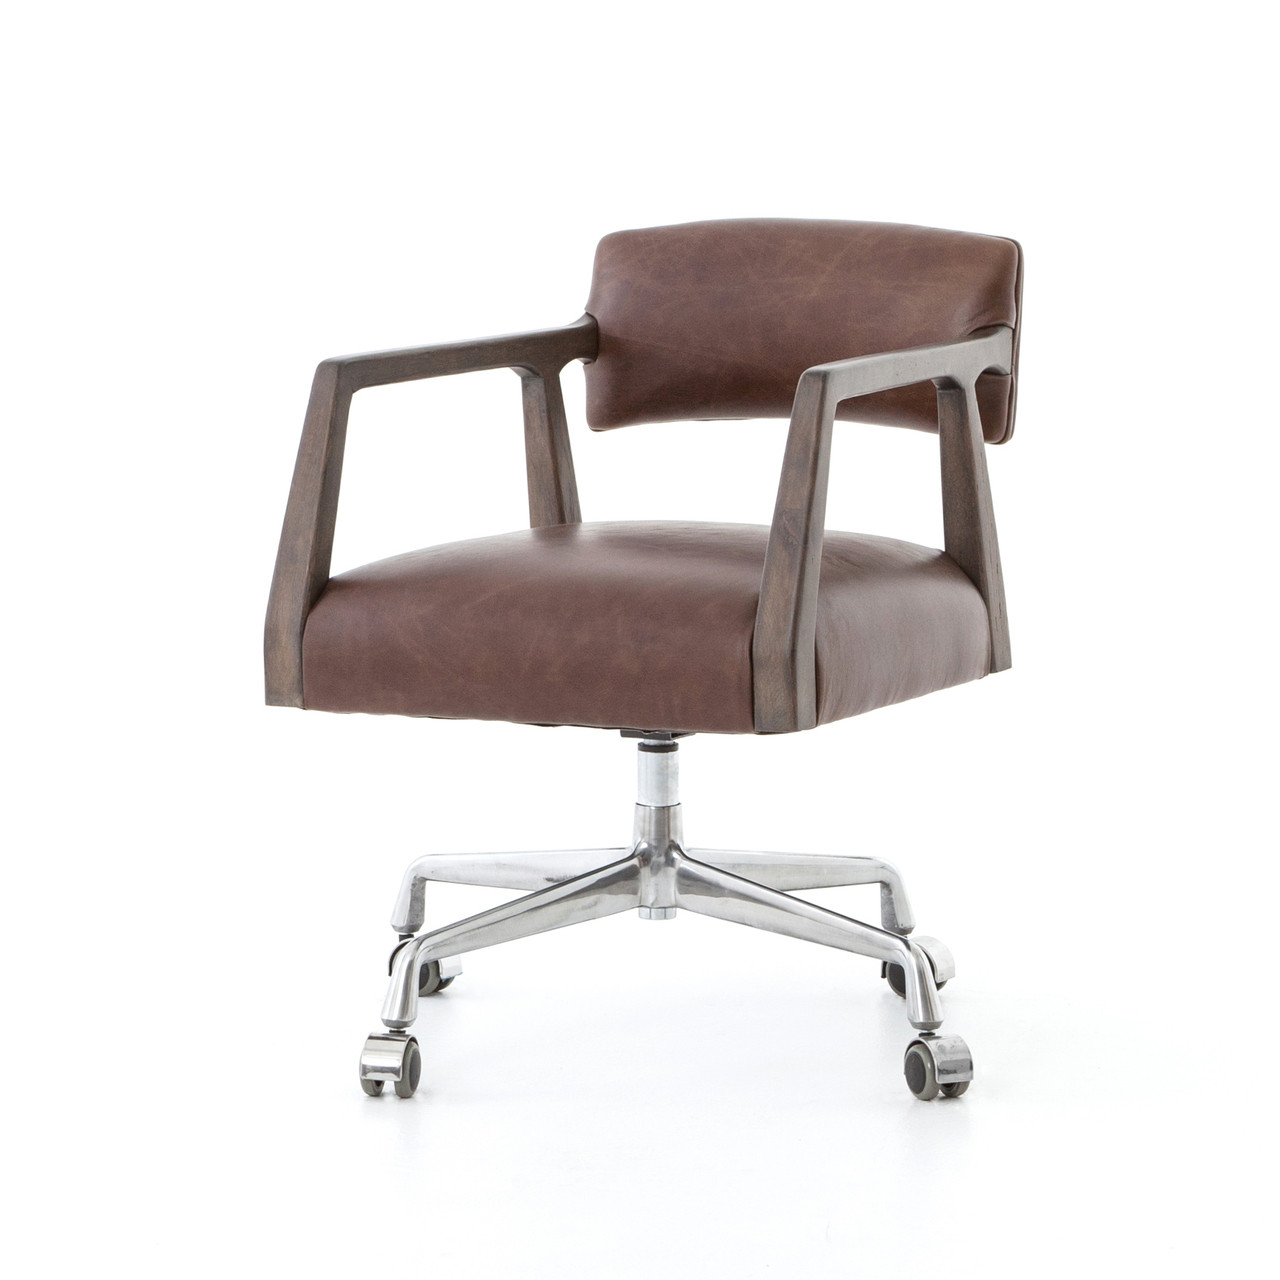 Cool Tyler Mid Century Modern Brown Leather Office Desk Chair Pabps2019 Chair Design Images Pabps2019Com